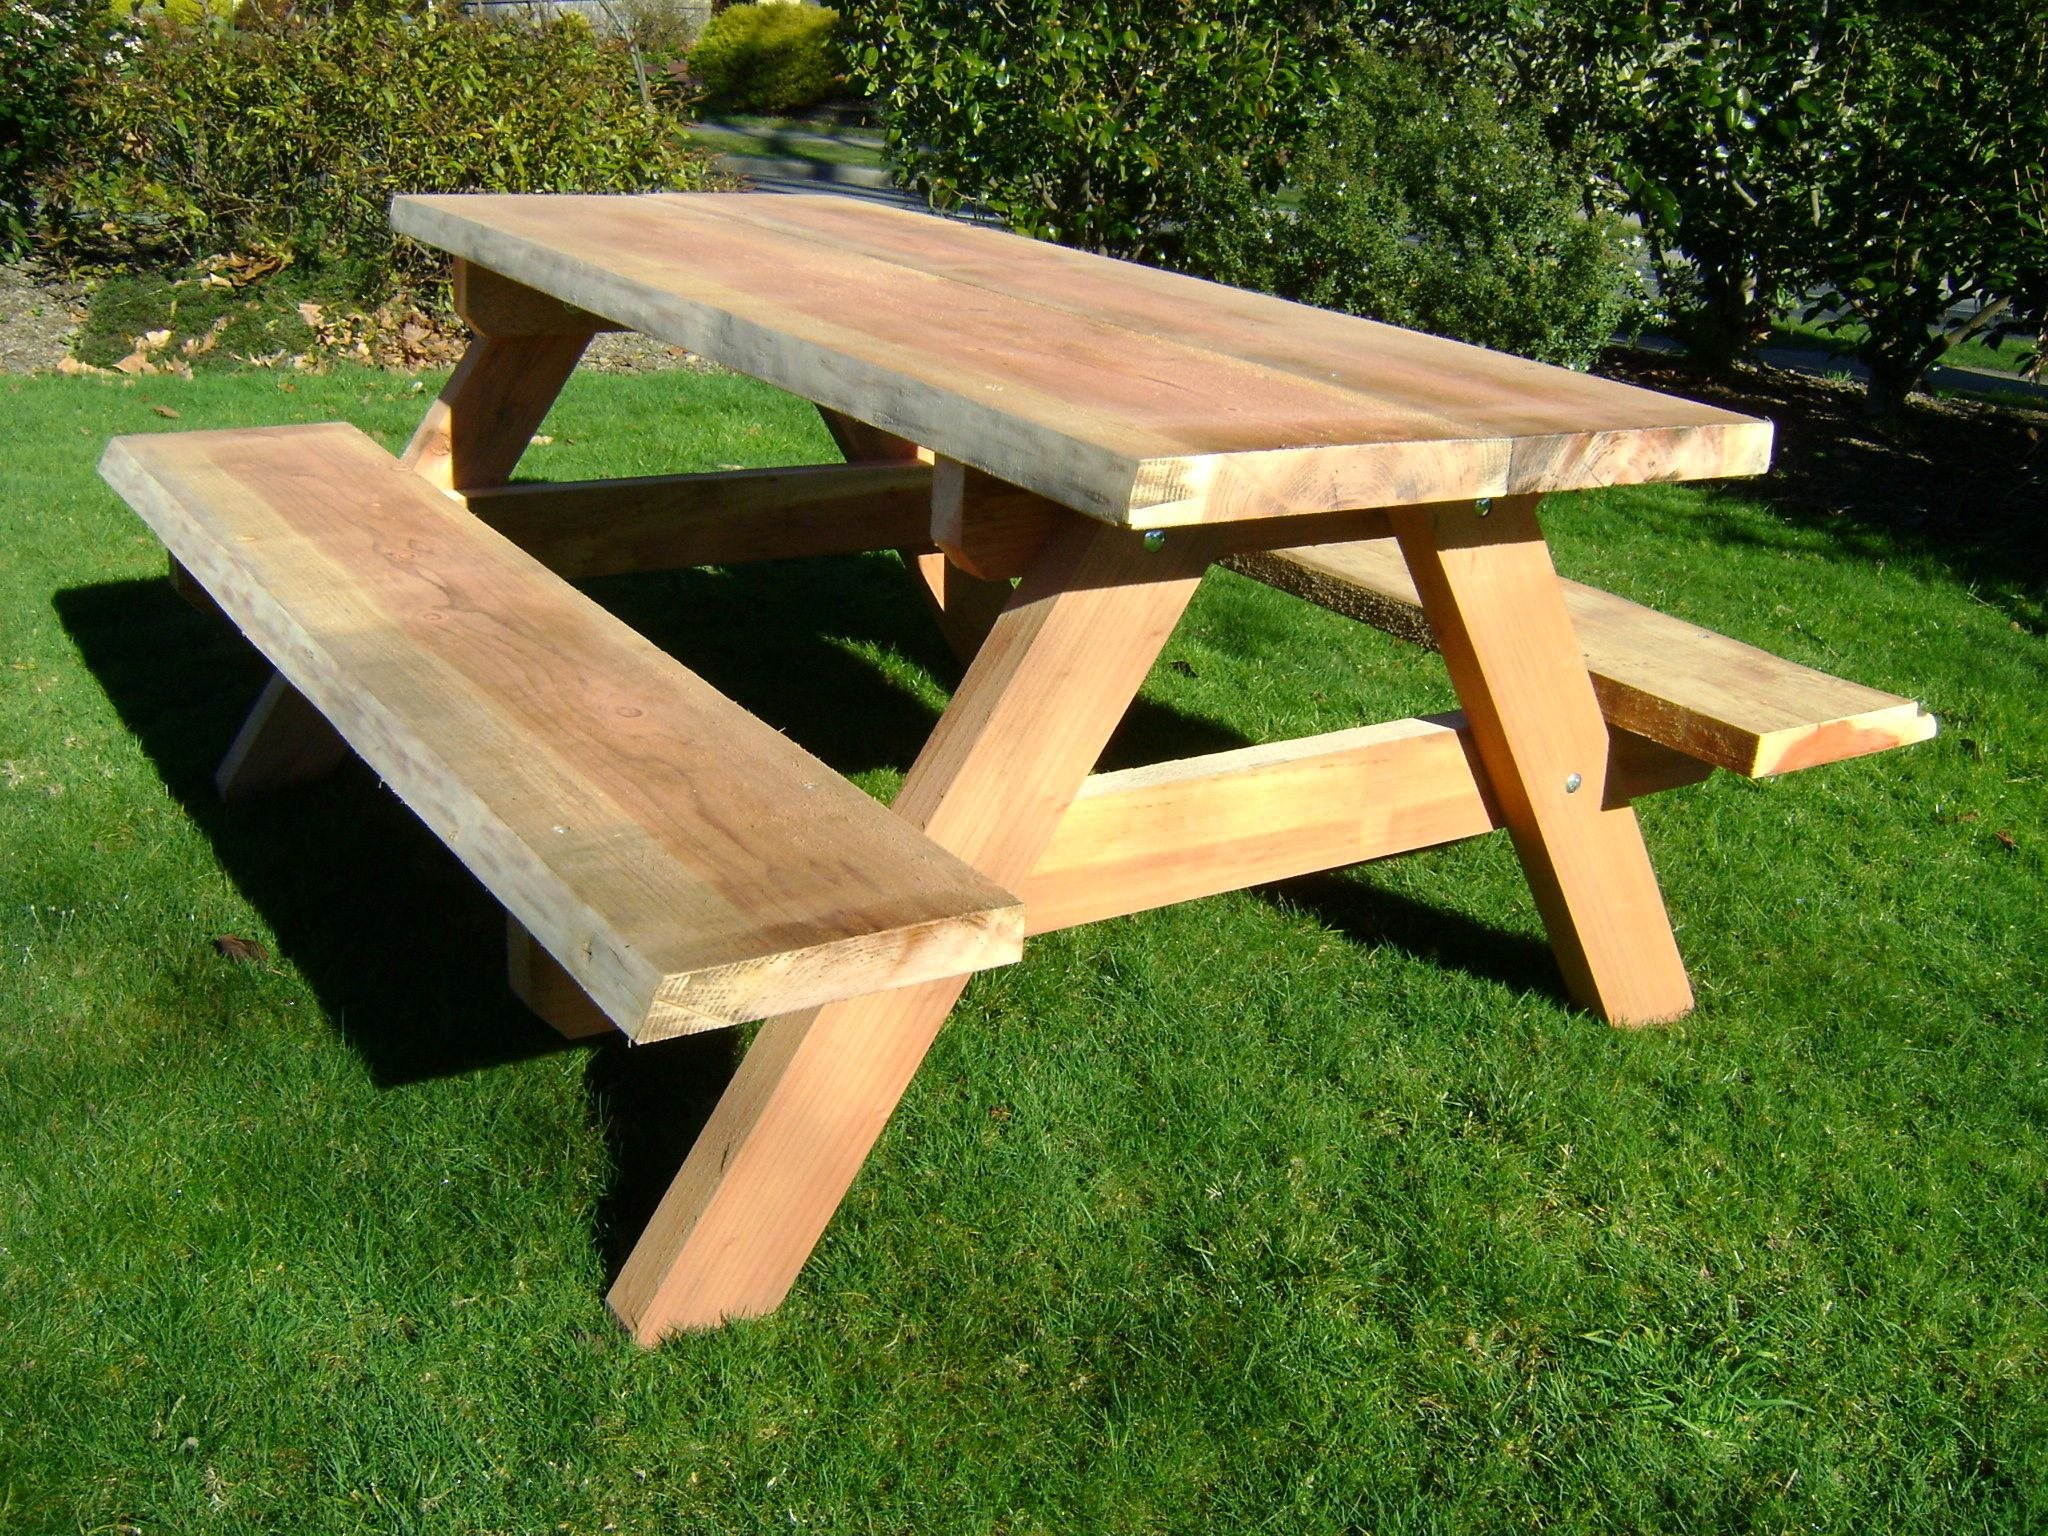 Outdoor Wood Patio Furniture Patio Table Plans Wood Patio Table Wooden Outdoor Table